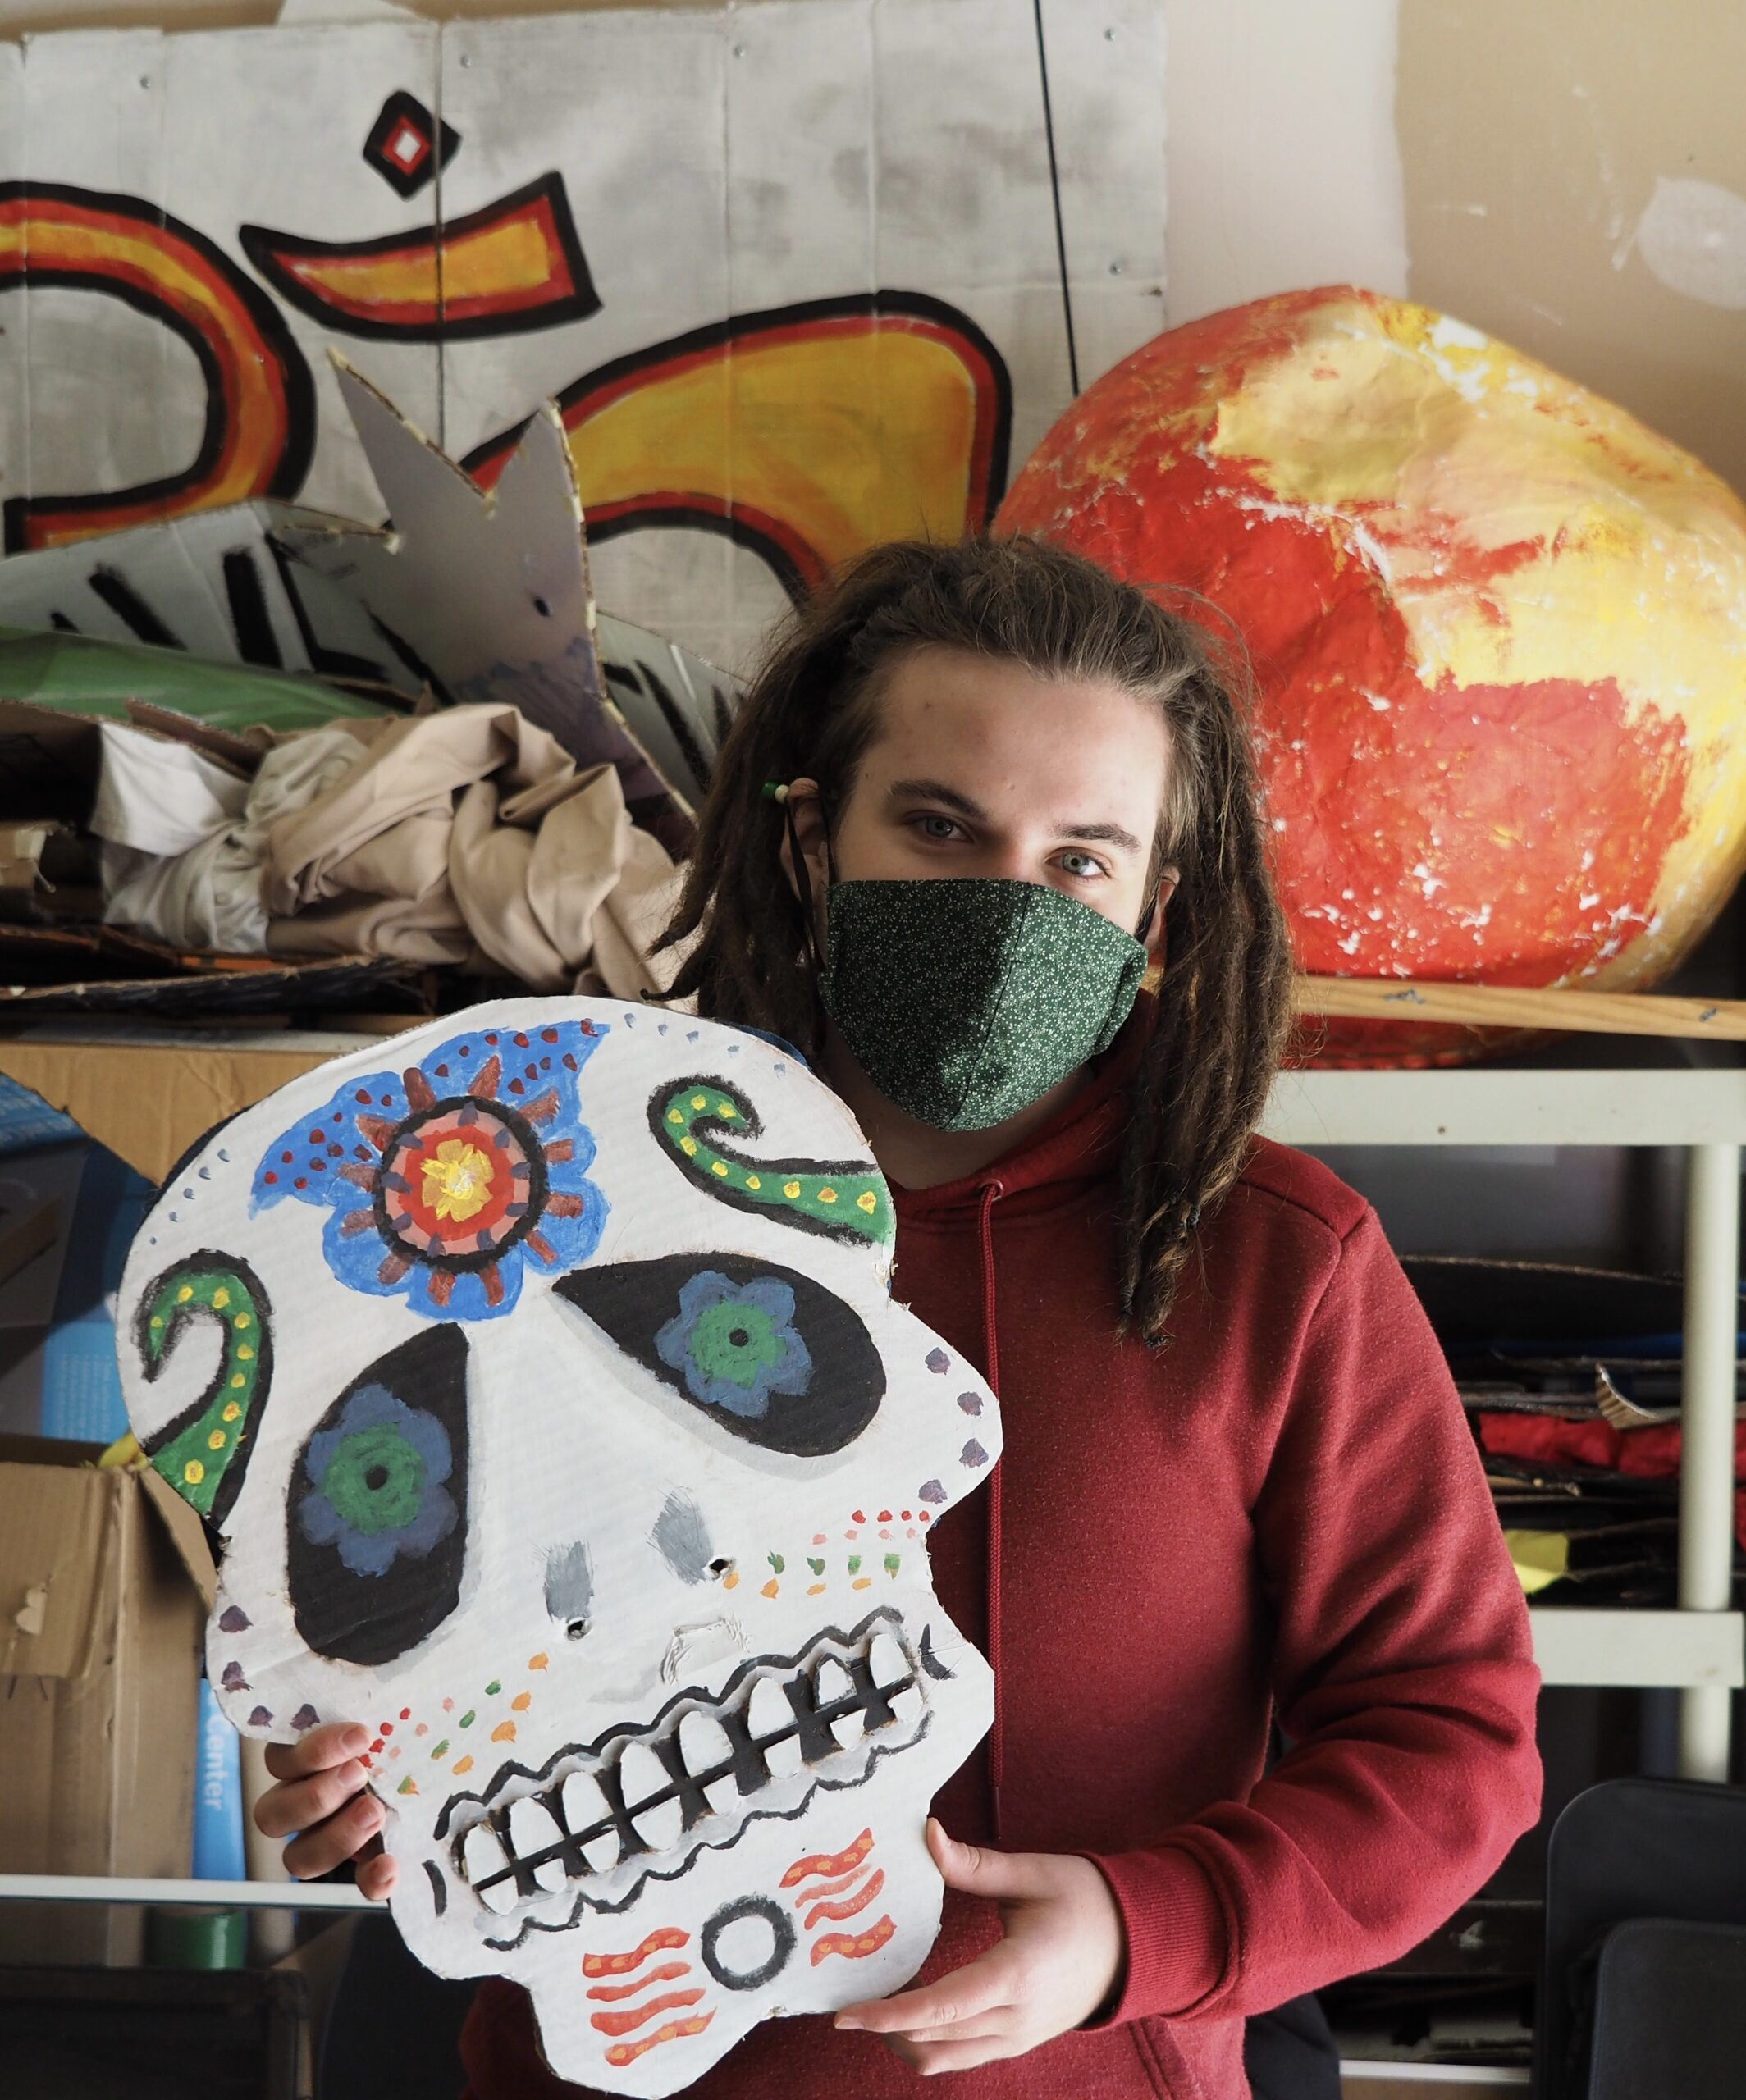 Sol Ramirez with Covid Mask holding skeleton Head mask in workshop by Aeon Schmoock